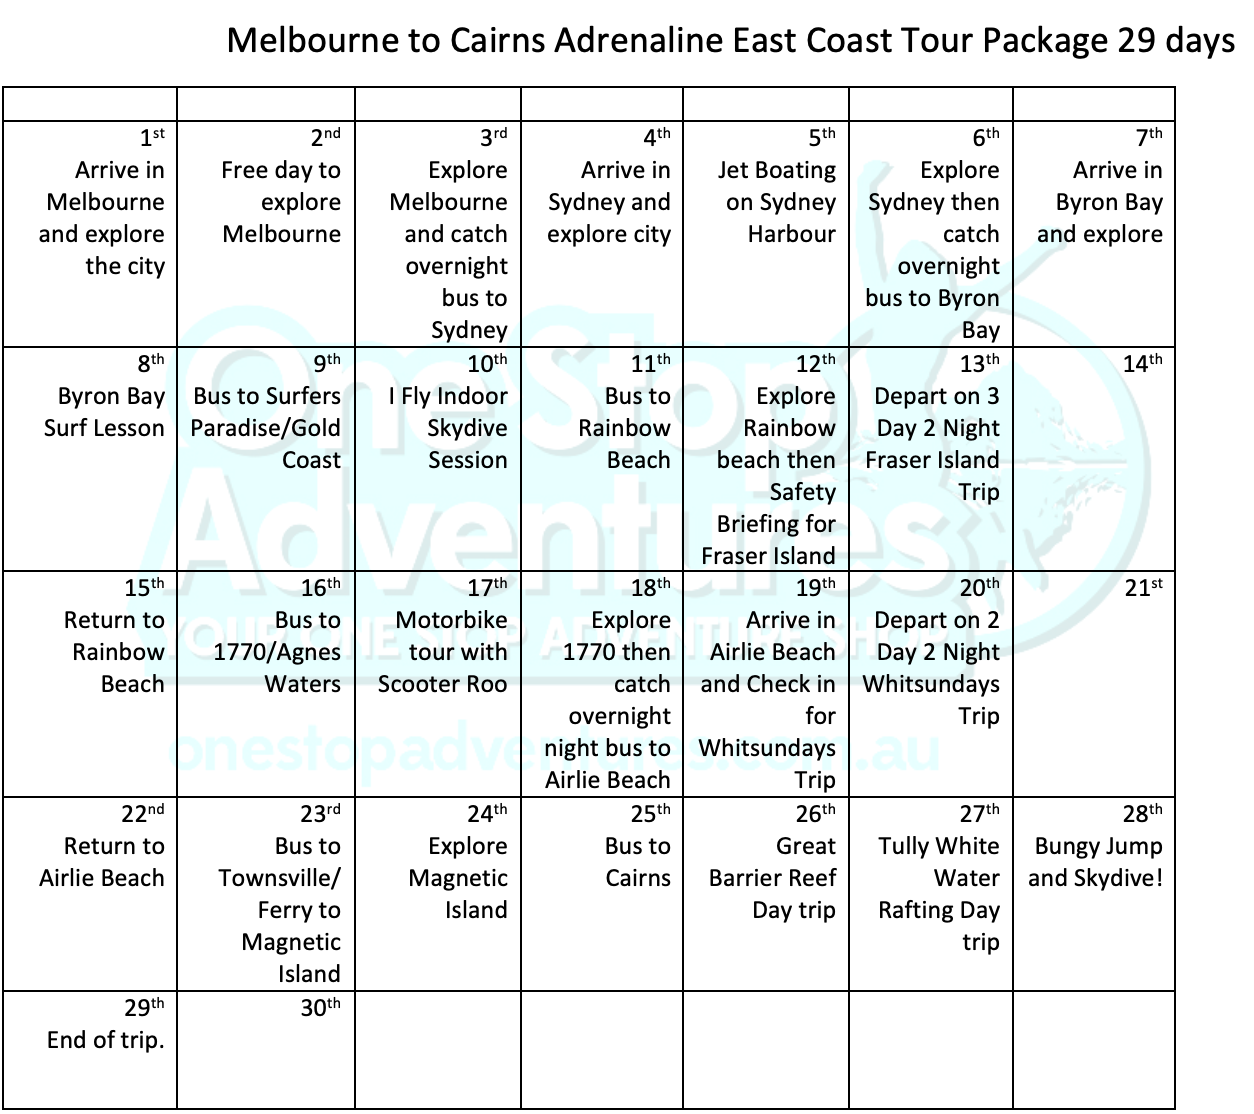 Melbourne to Cairns East Coast itinerary